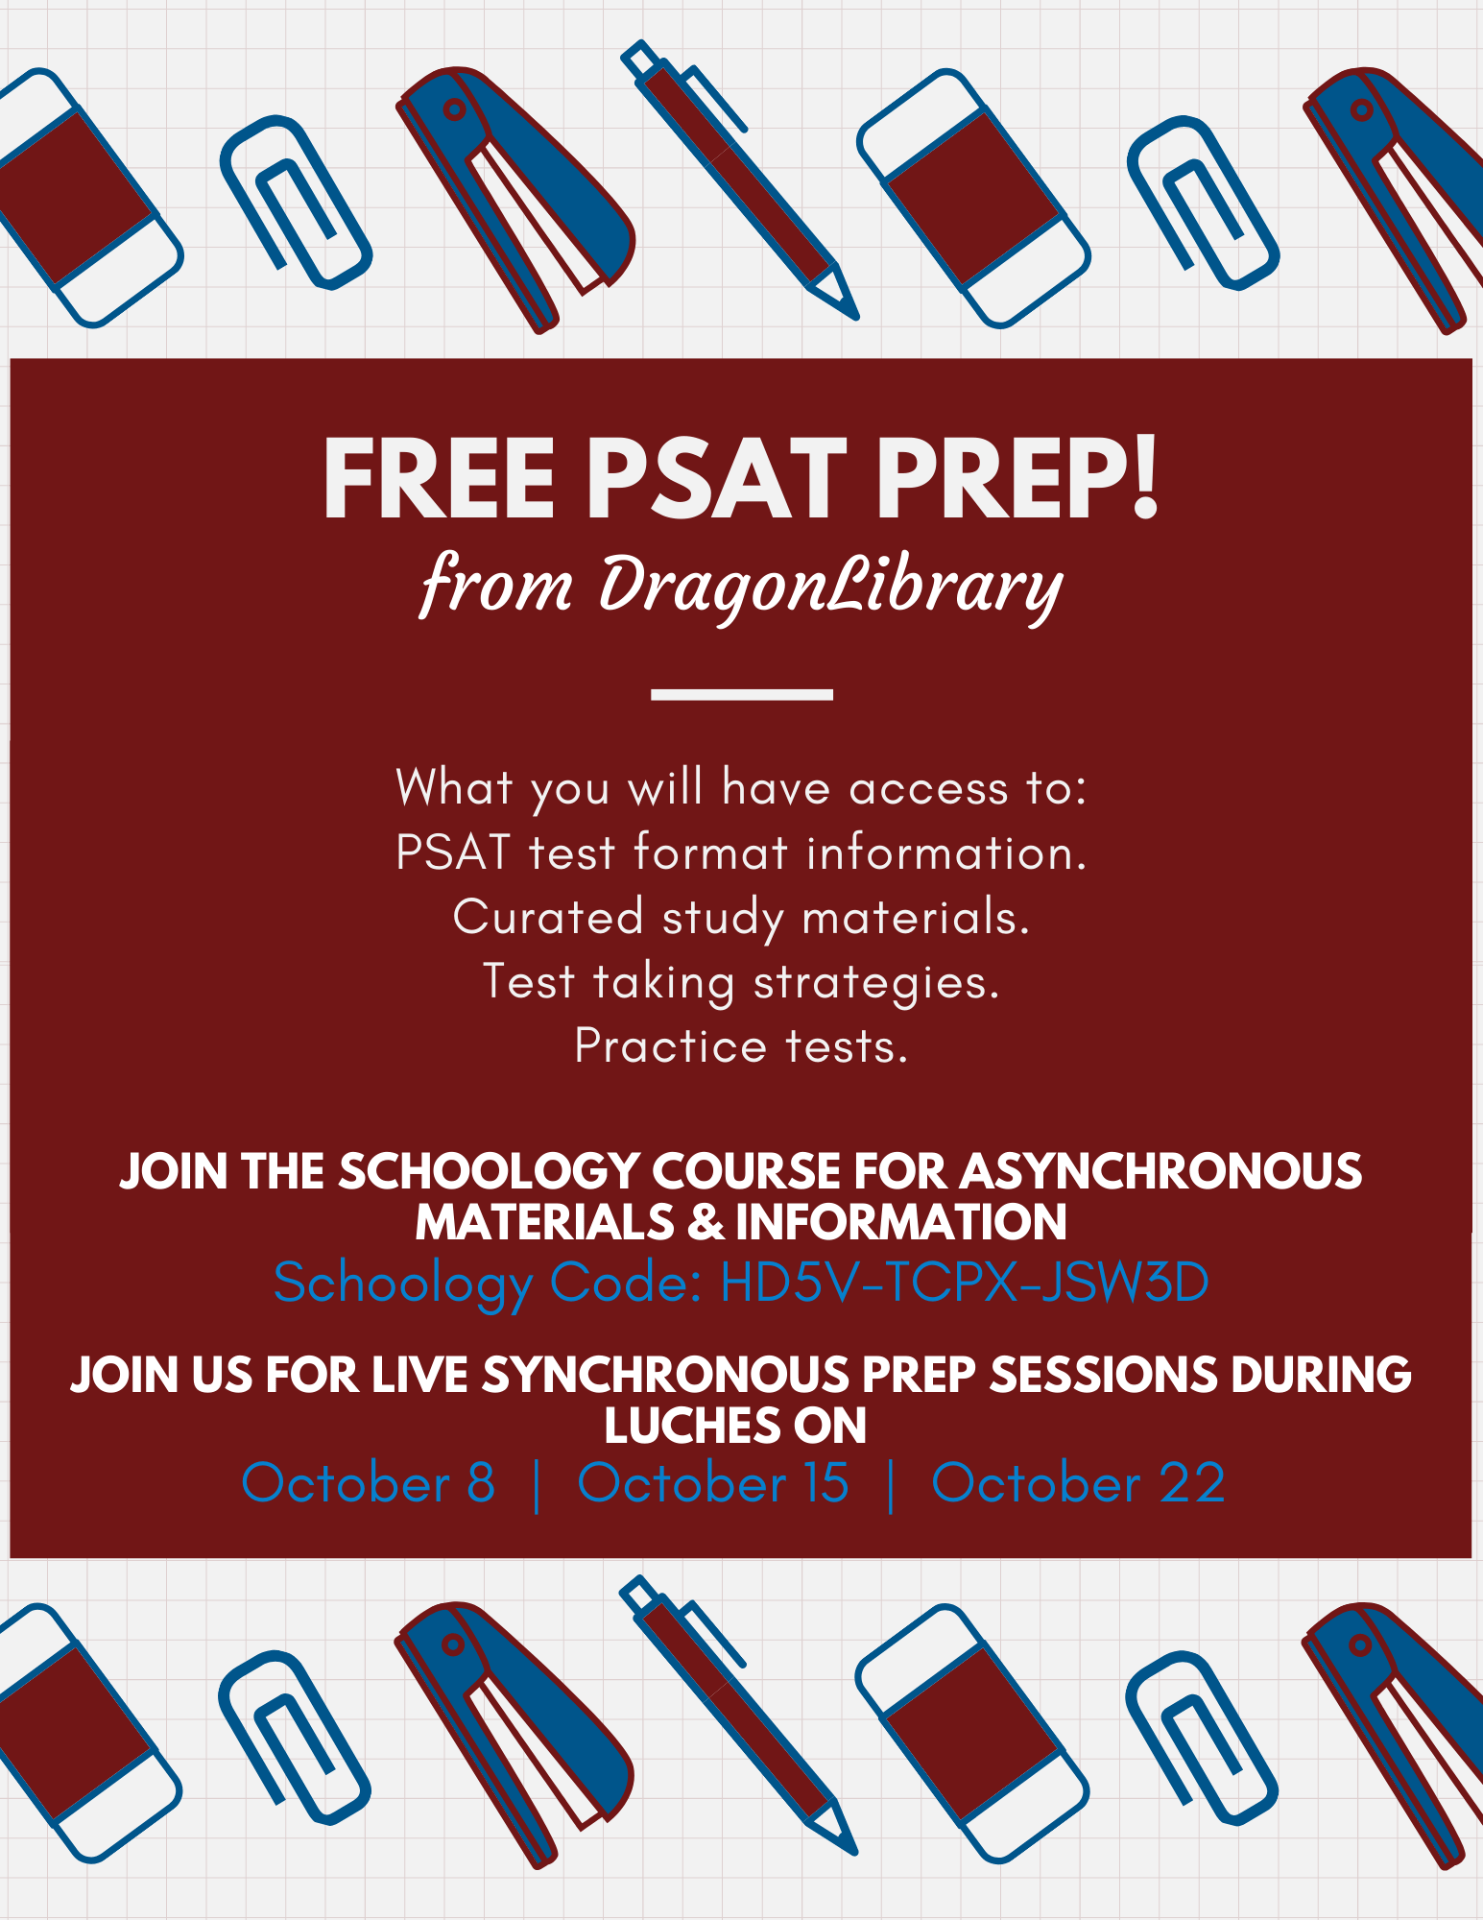 Free PSAT Prep with DragonLibrary flyer